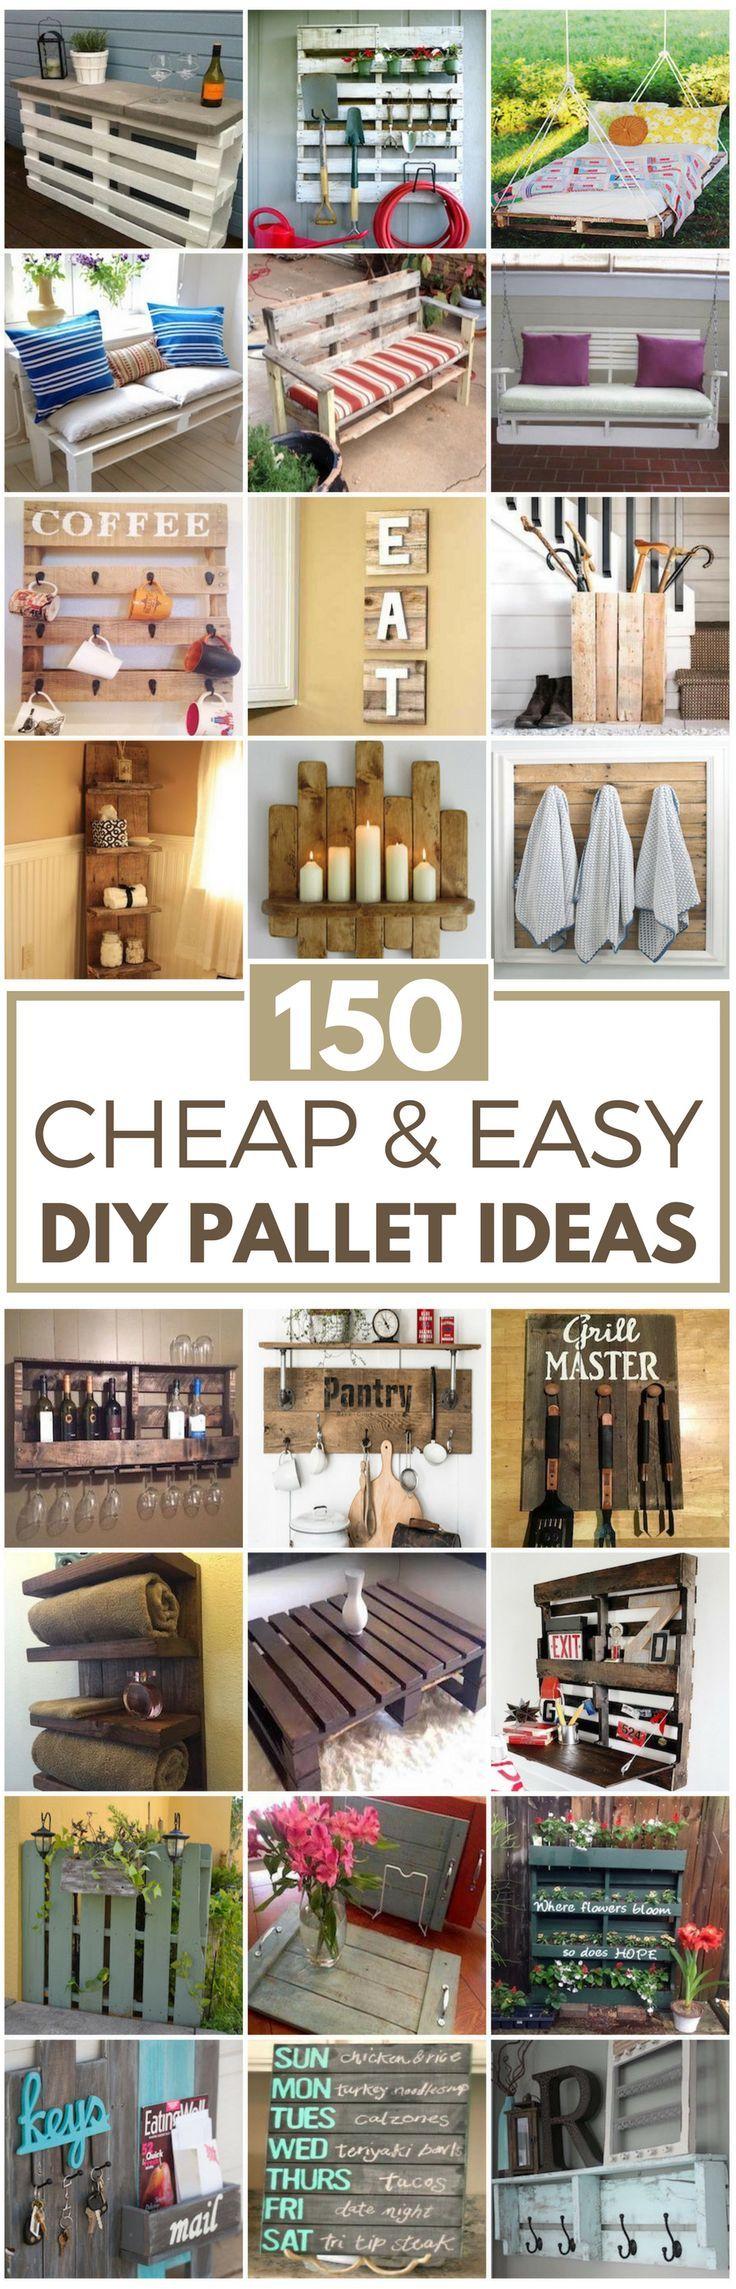 150 Cheap & Easy Pallet Projects | Home Projects | Pinterest ...